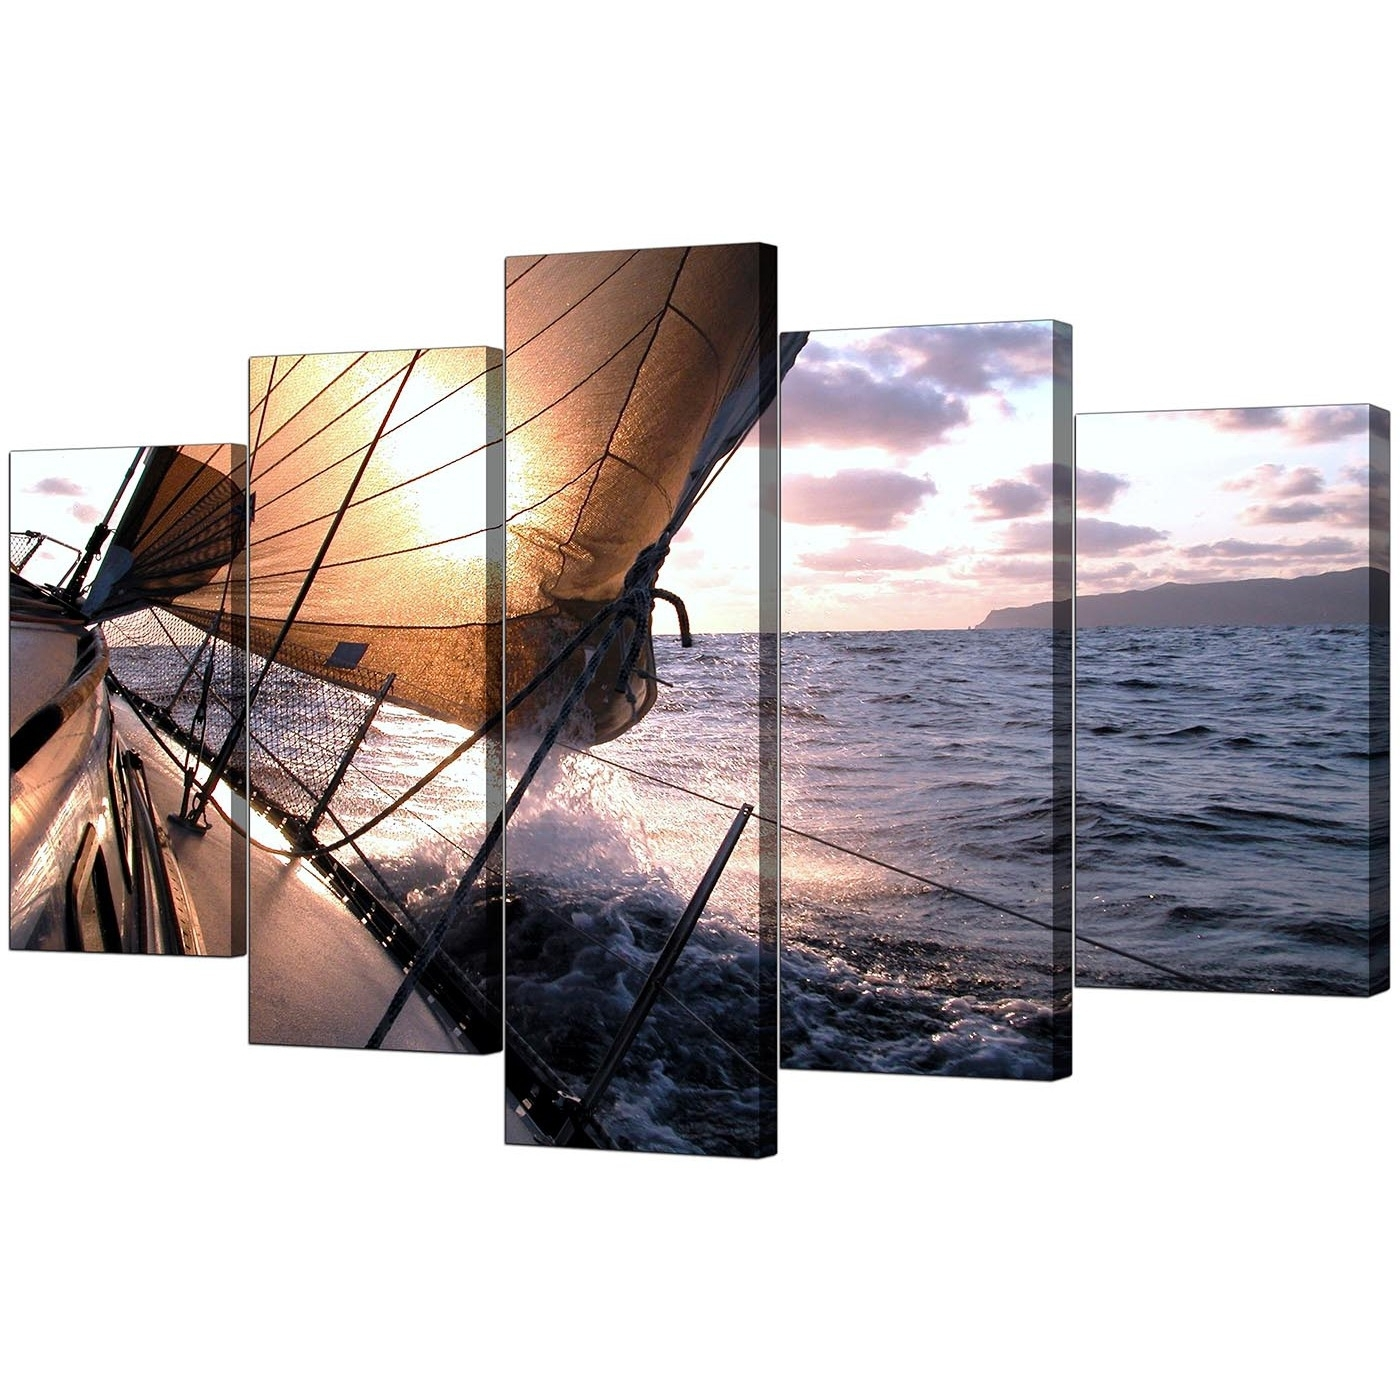 5 Piece Canvas Wall Art In Most Popular Boat Canvas Prints Uk For Your Living Room – 5 Piece (View 4 of 15)